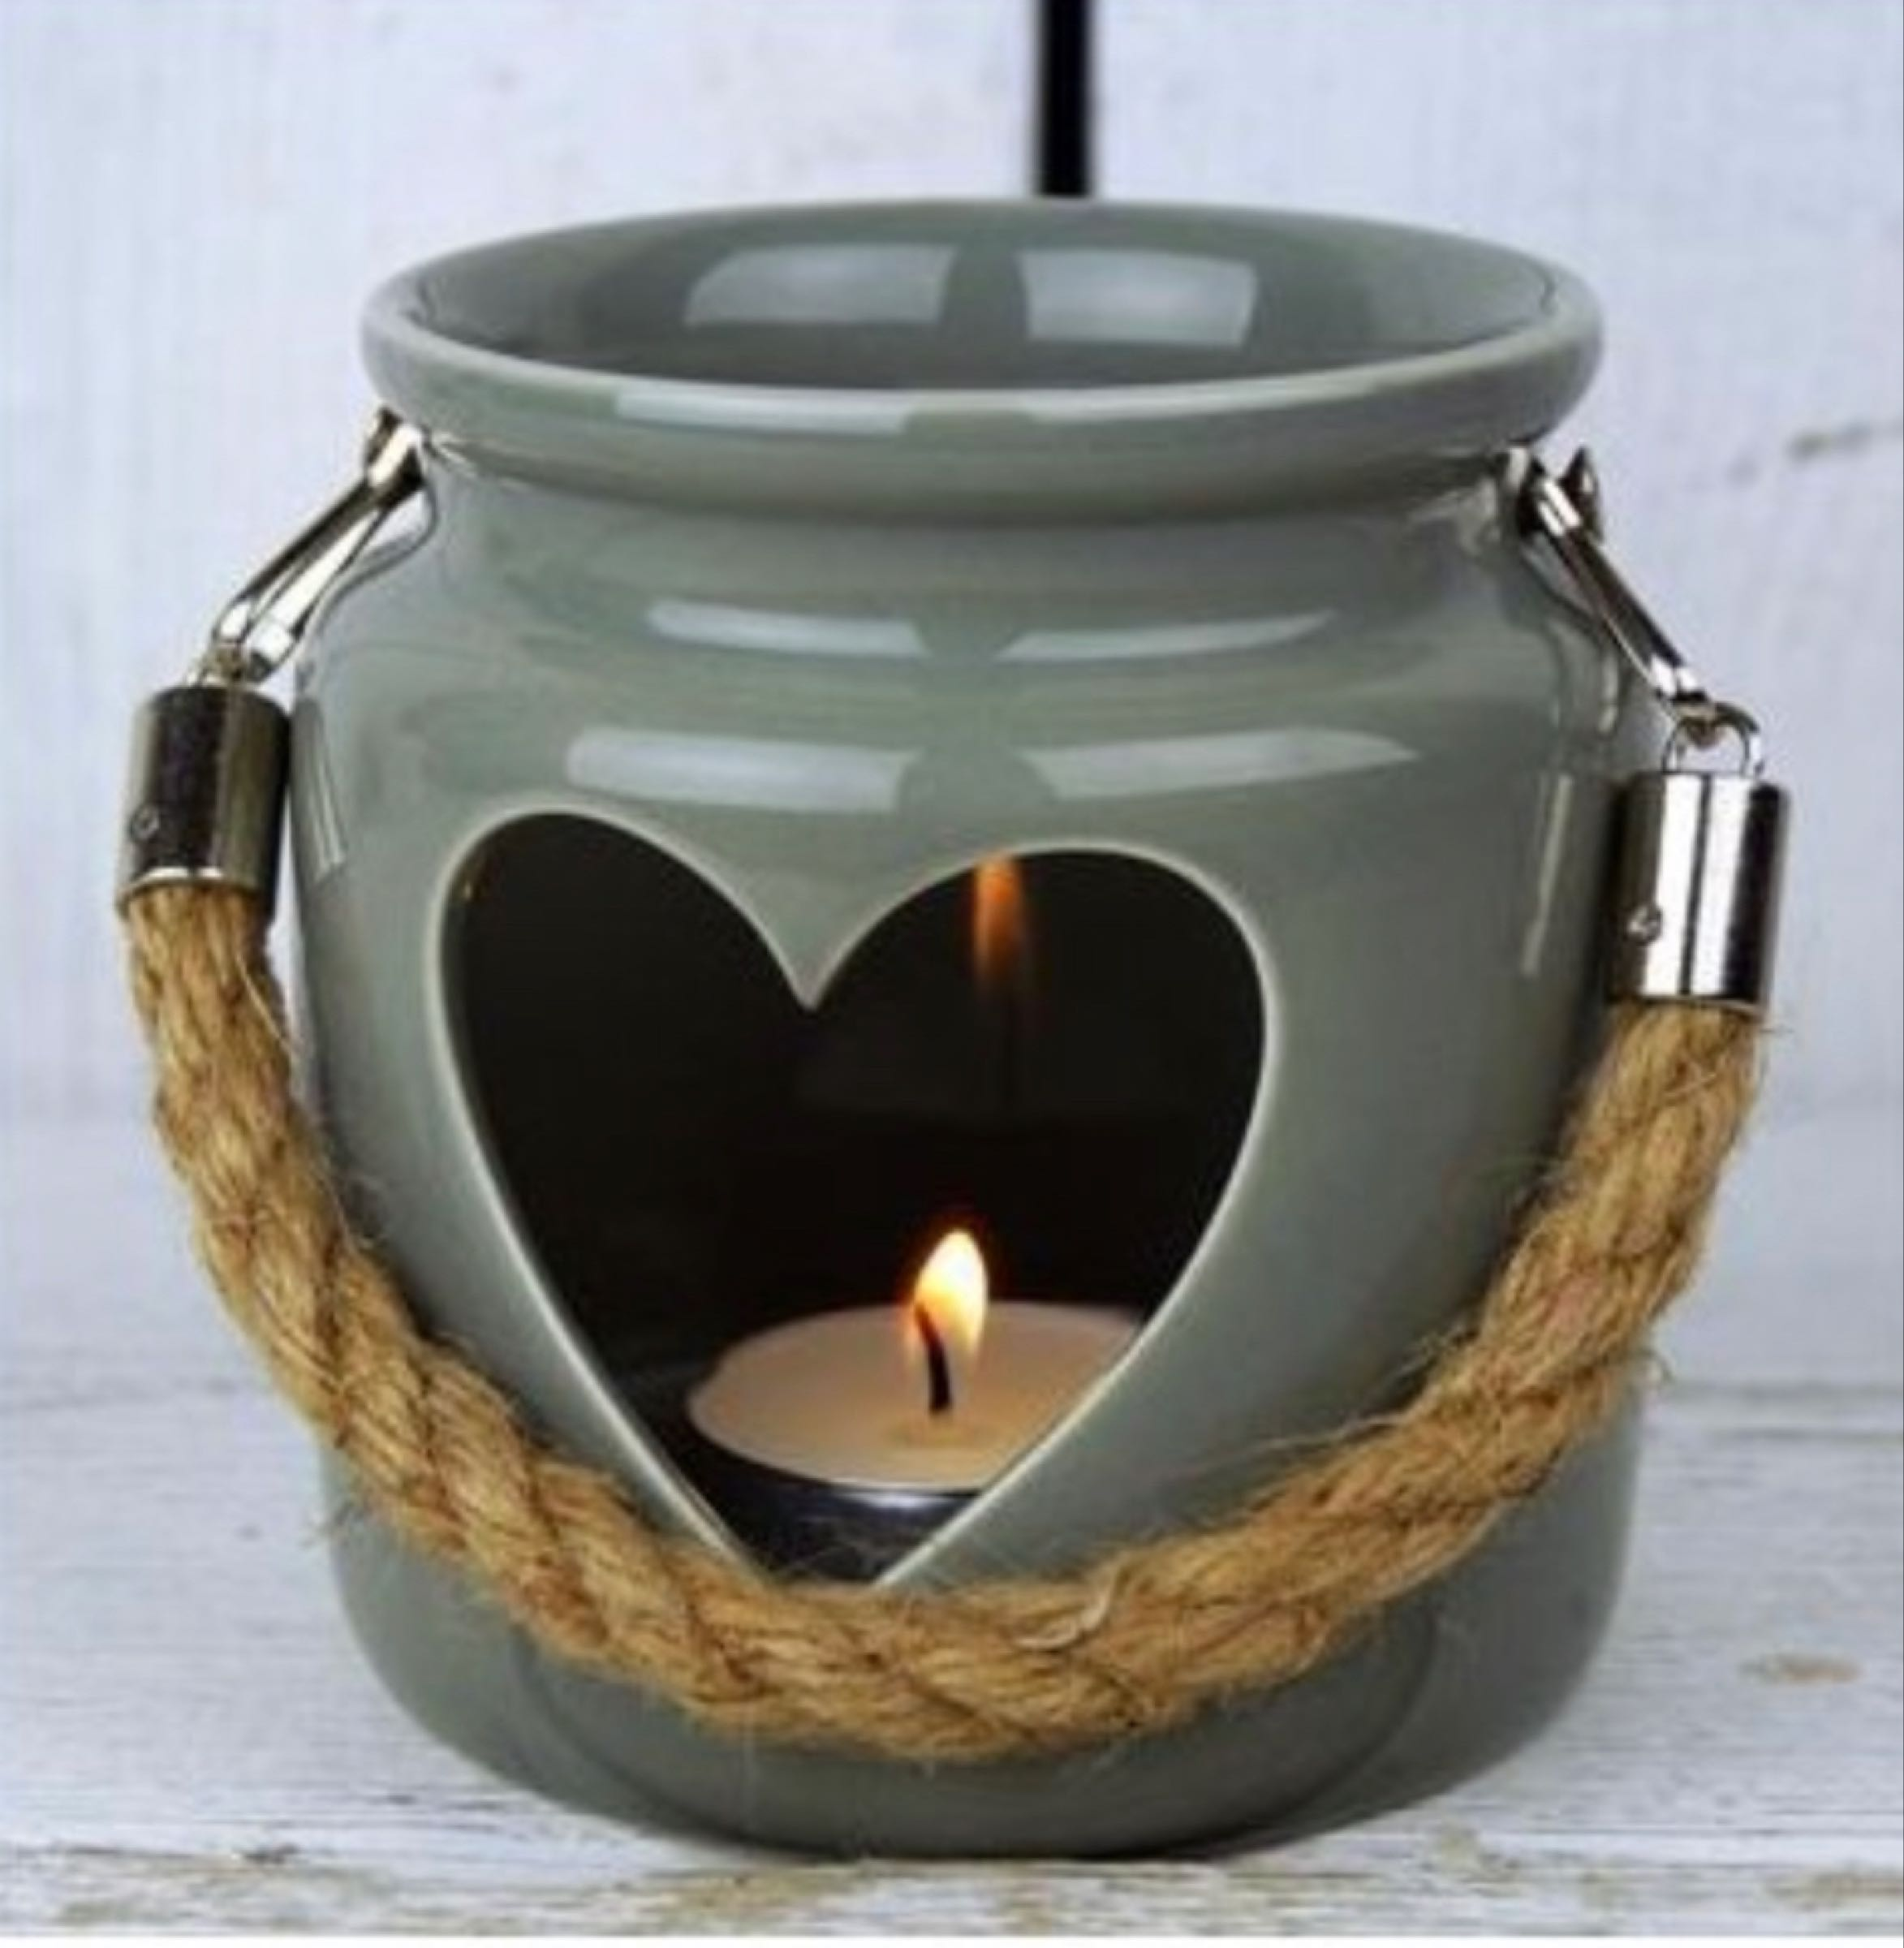 Porcelain Tealight Holder 10cm x8.5cm